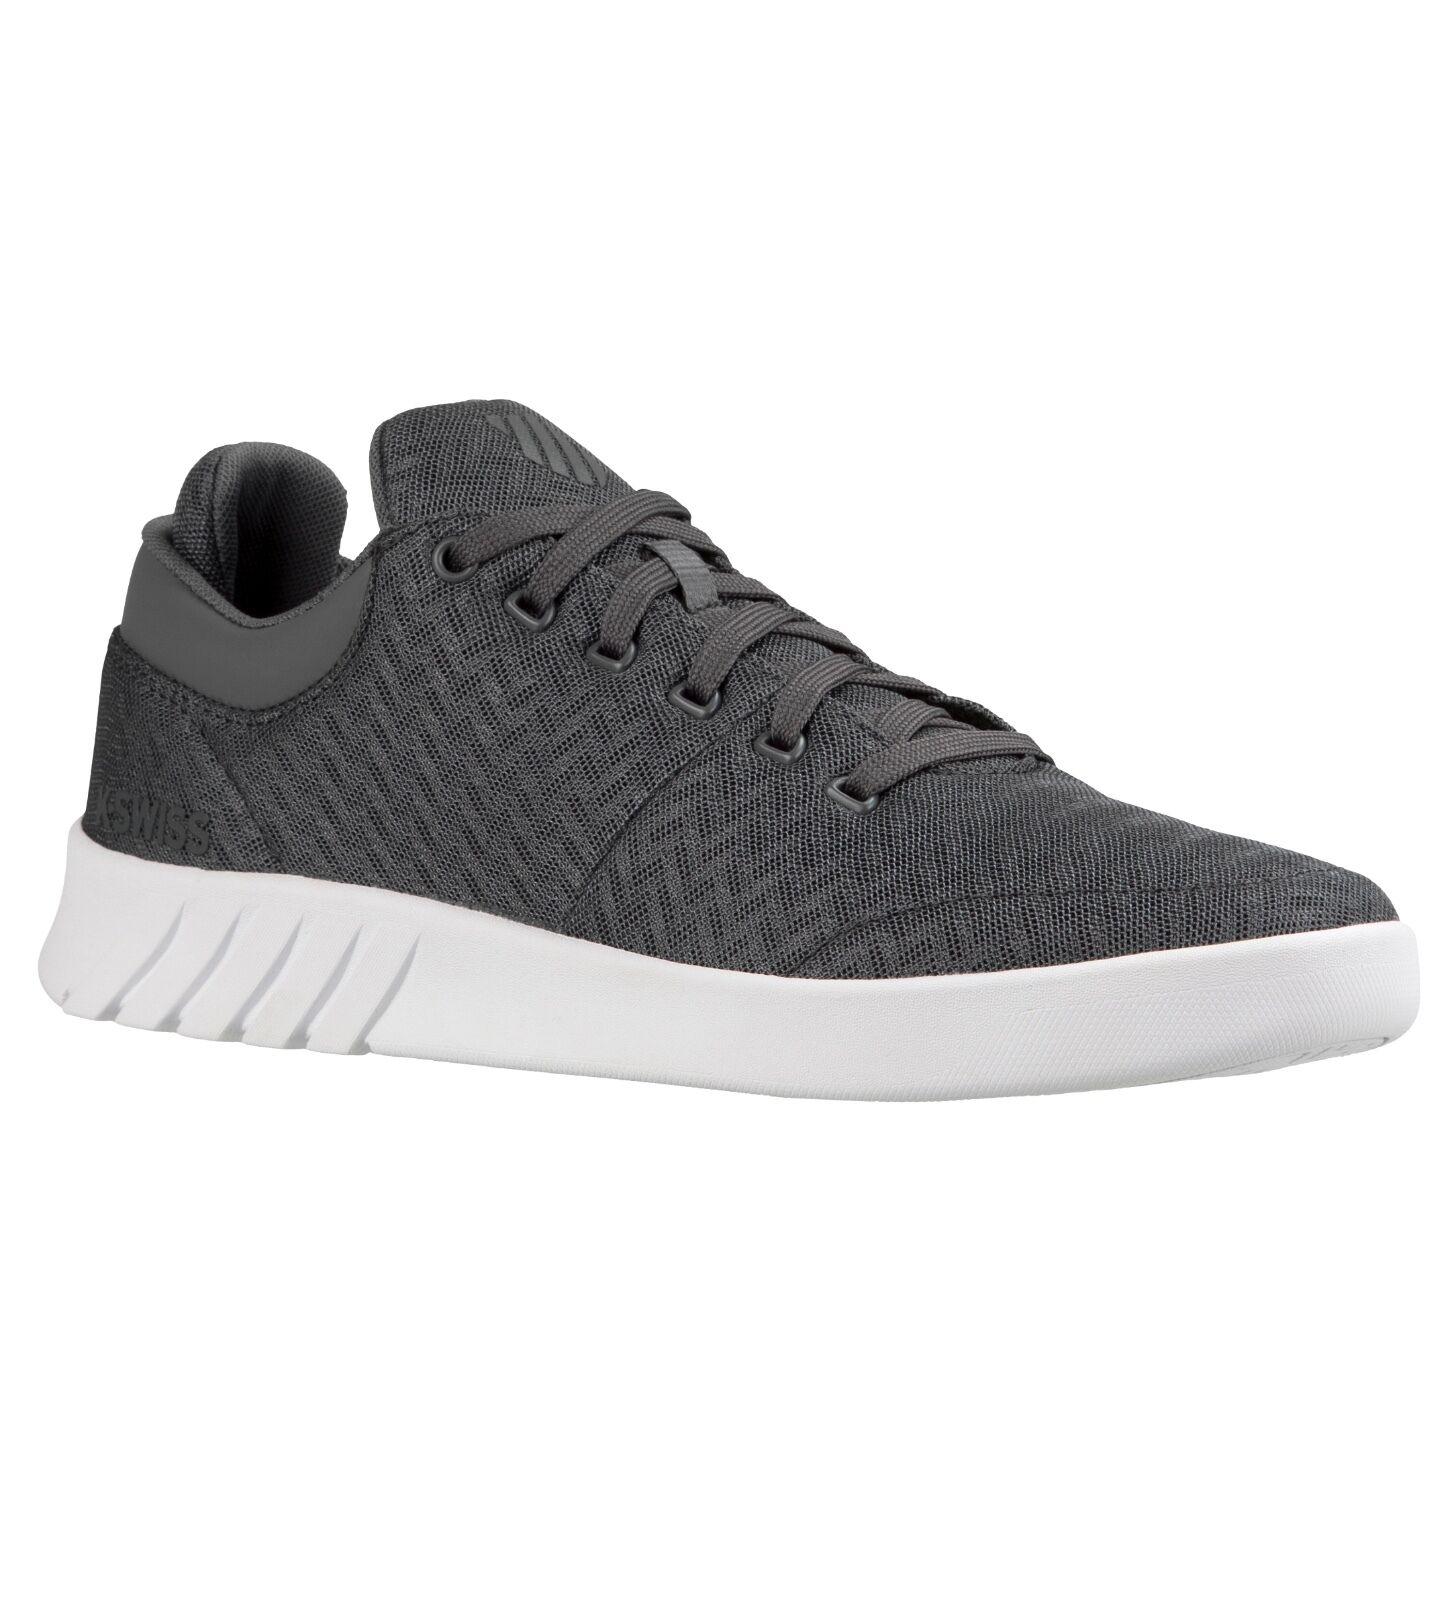 K-Swiss Aero Lightweight Mesh Trainer Casual Sporty Gym Sneaker shoes Grey White